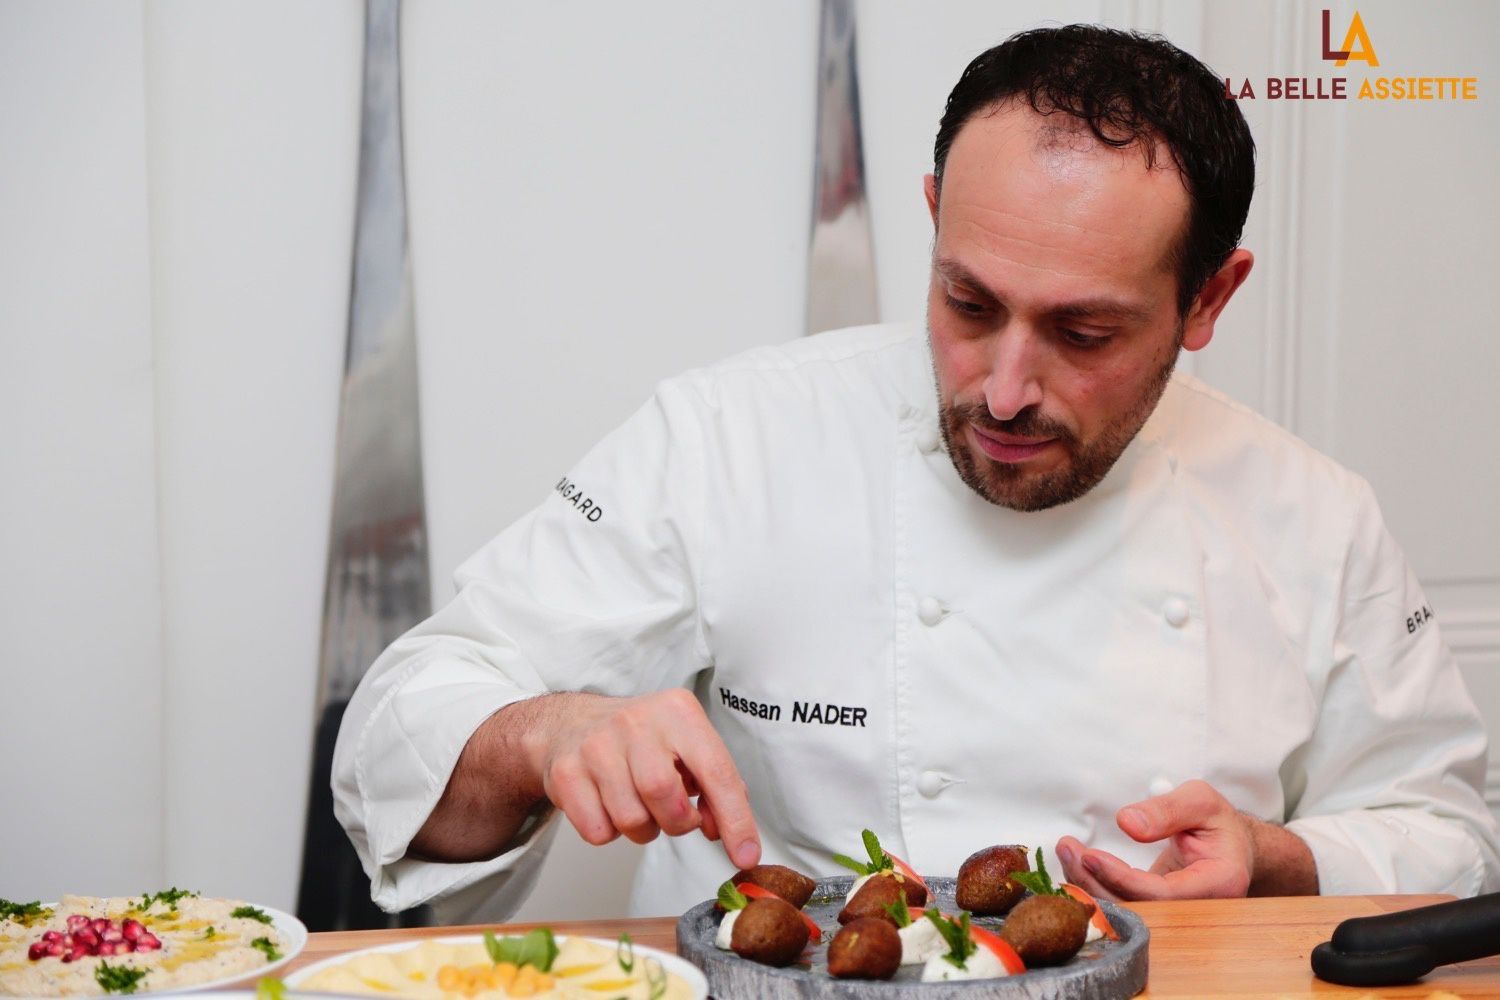 Le Chef Hassan Nader